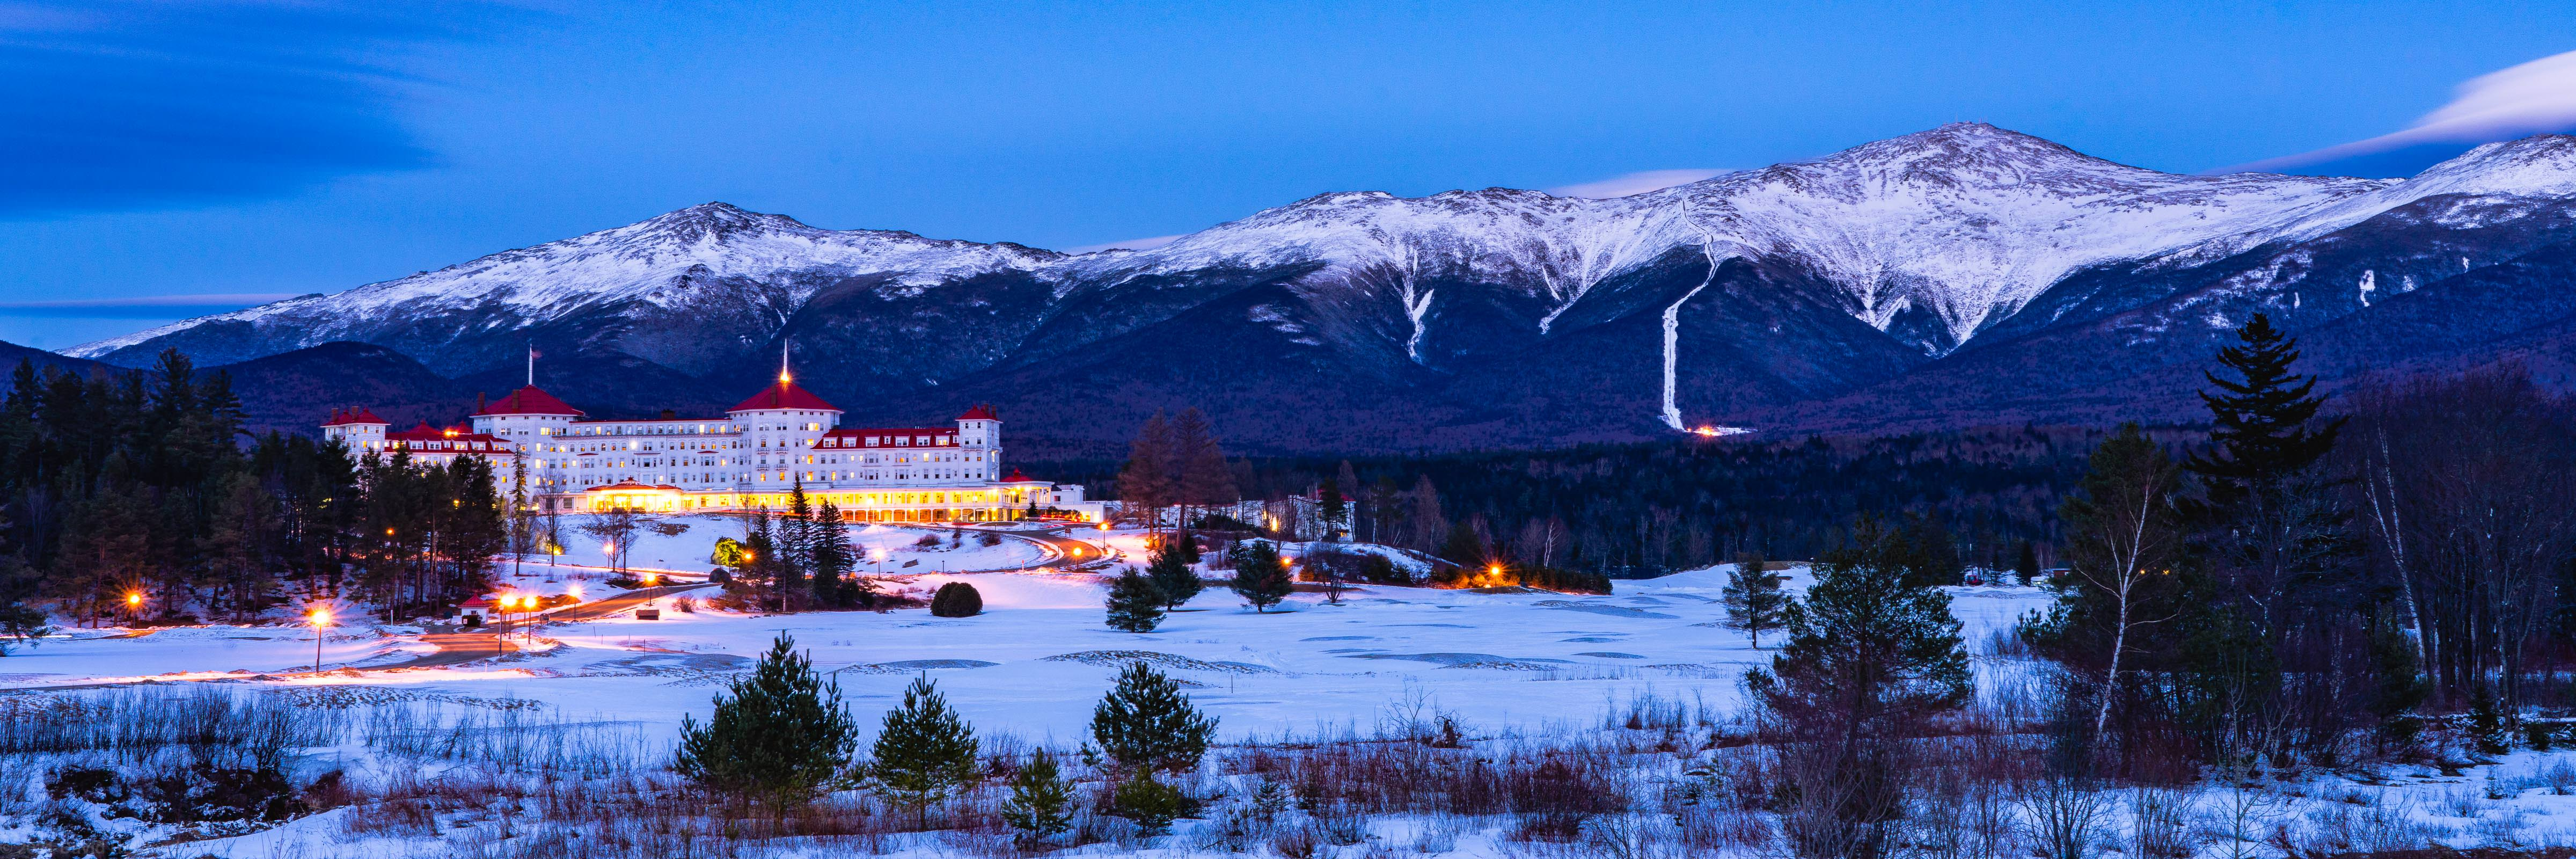 The Presidential Range and the Mount Washington Hotel